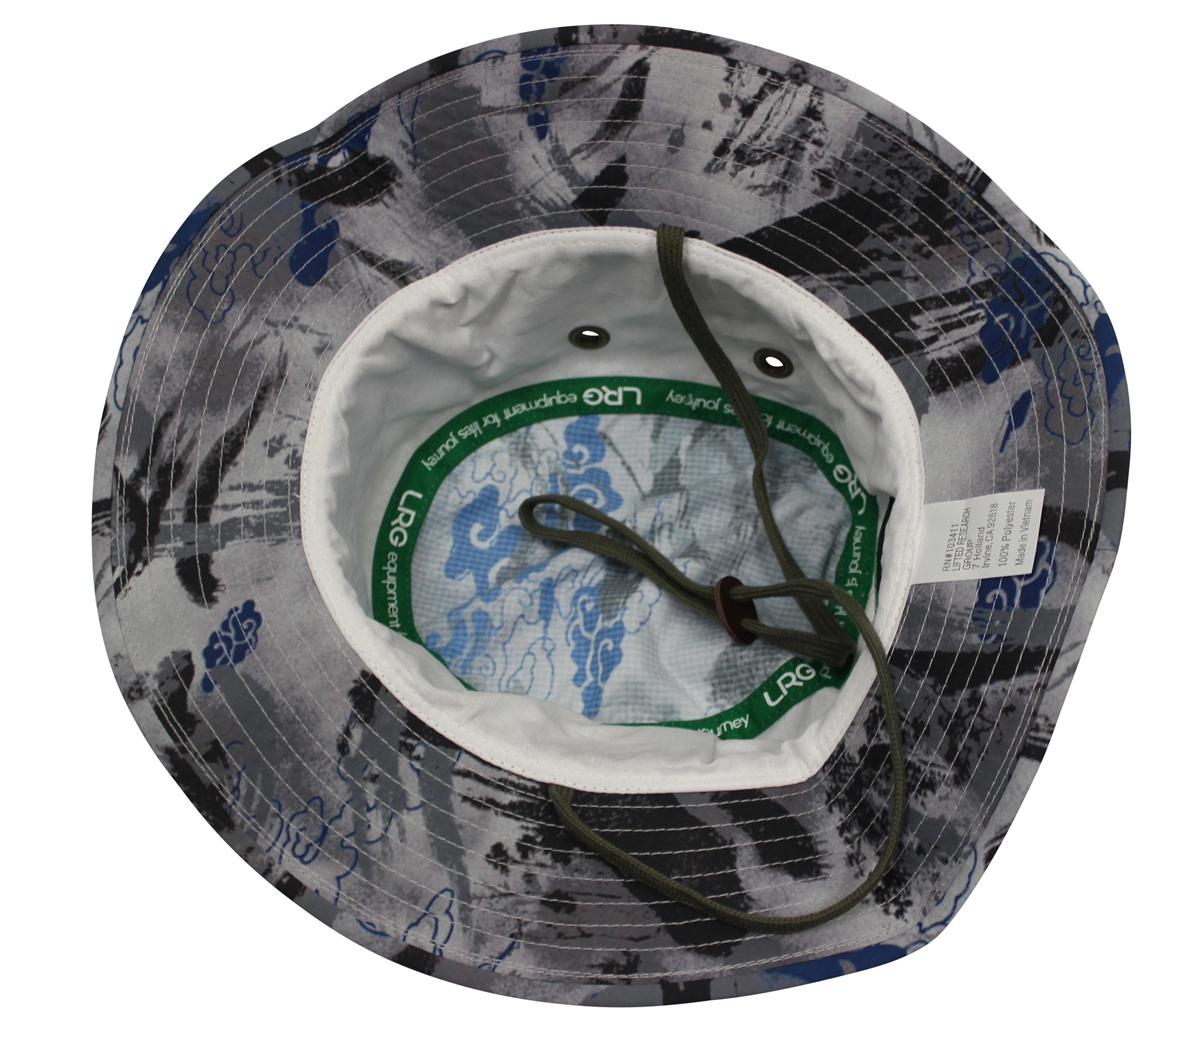 LRG Lifted Research Group Search   Rescue Boonie Hat ecbe5043280